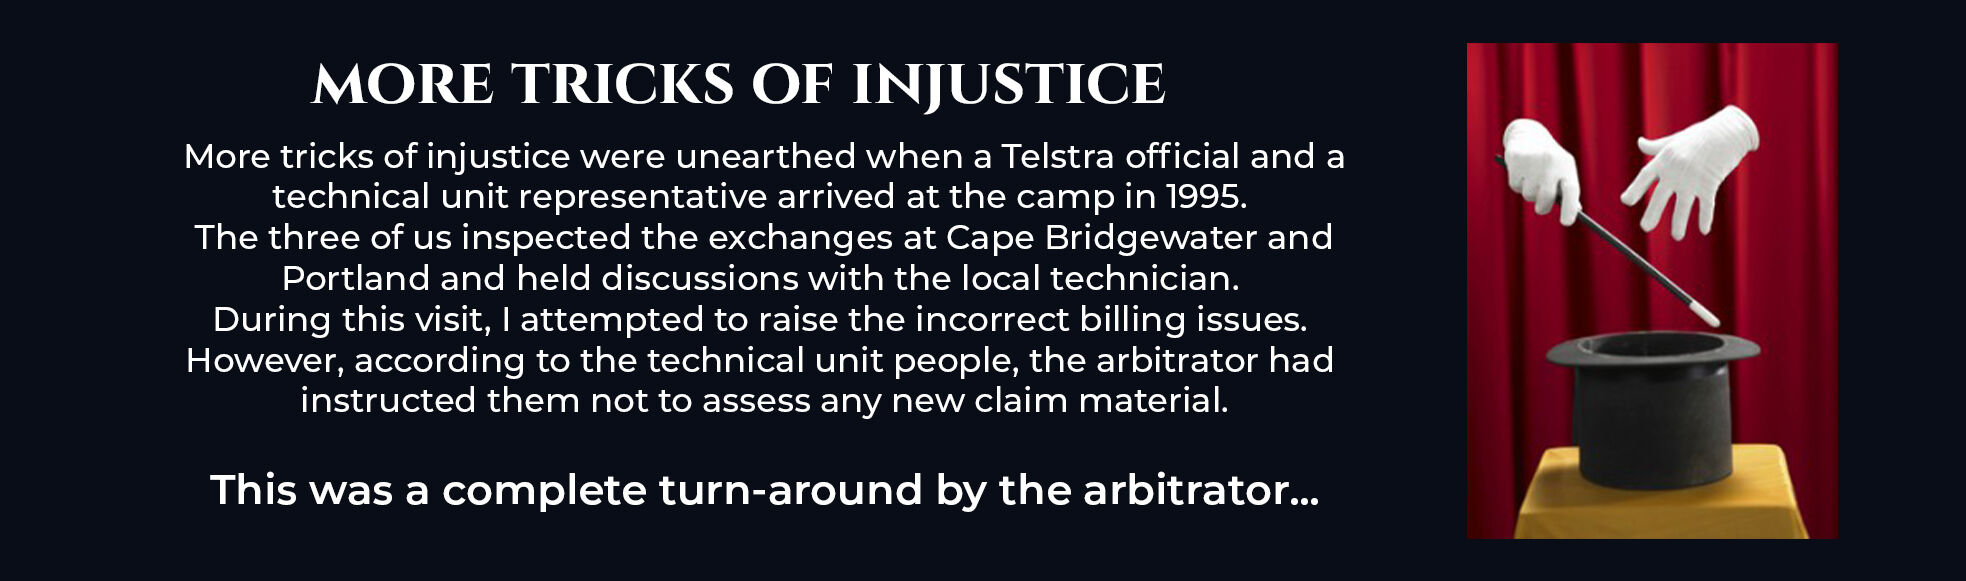 Absent Justice - Tricks of Injustice